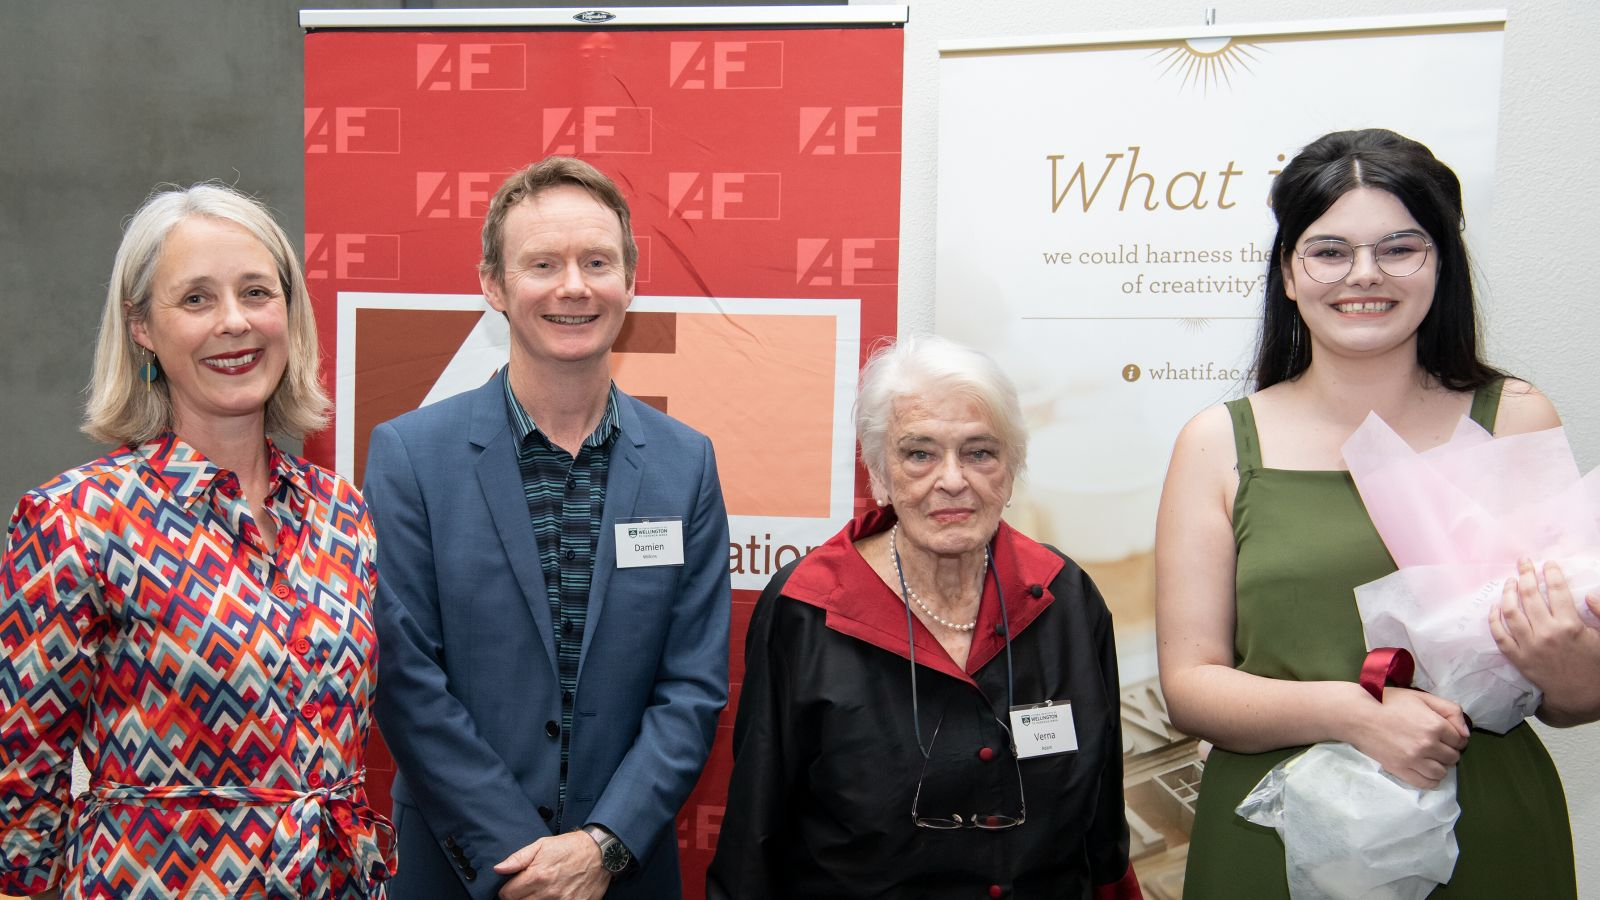 Four people pose for a photo, Kate Duignan, Damien Wilkins, Verna Adam, Rebecca K Reilly.